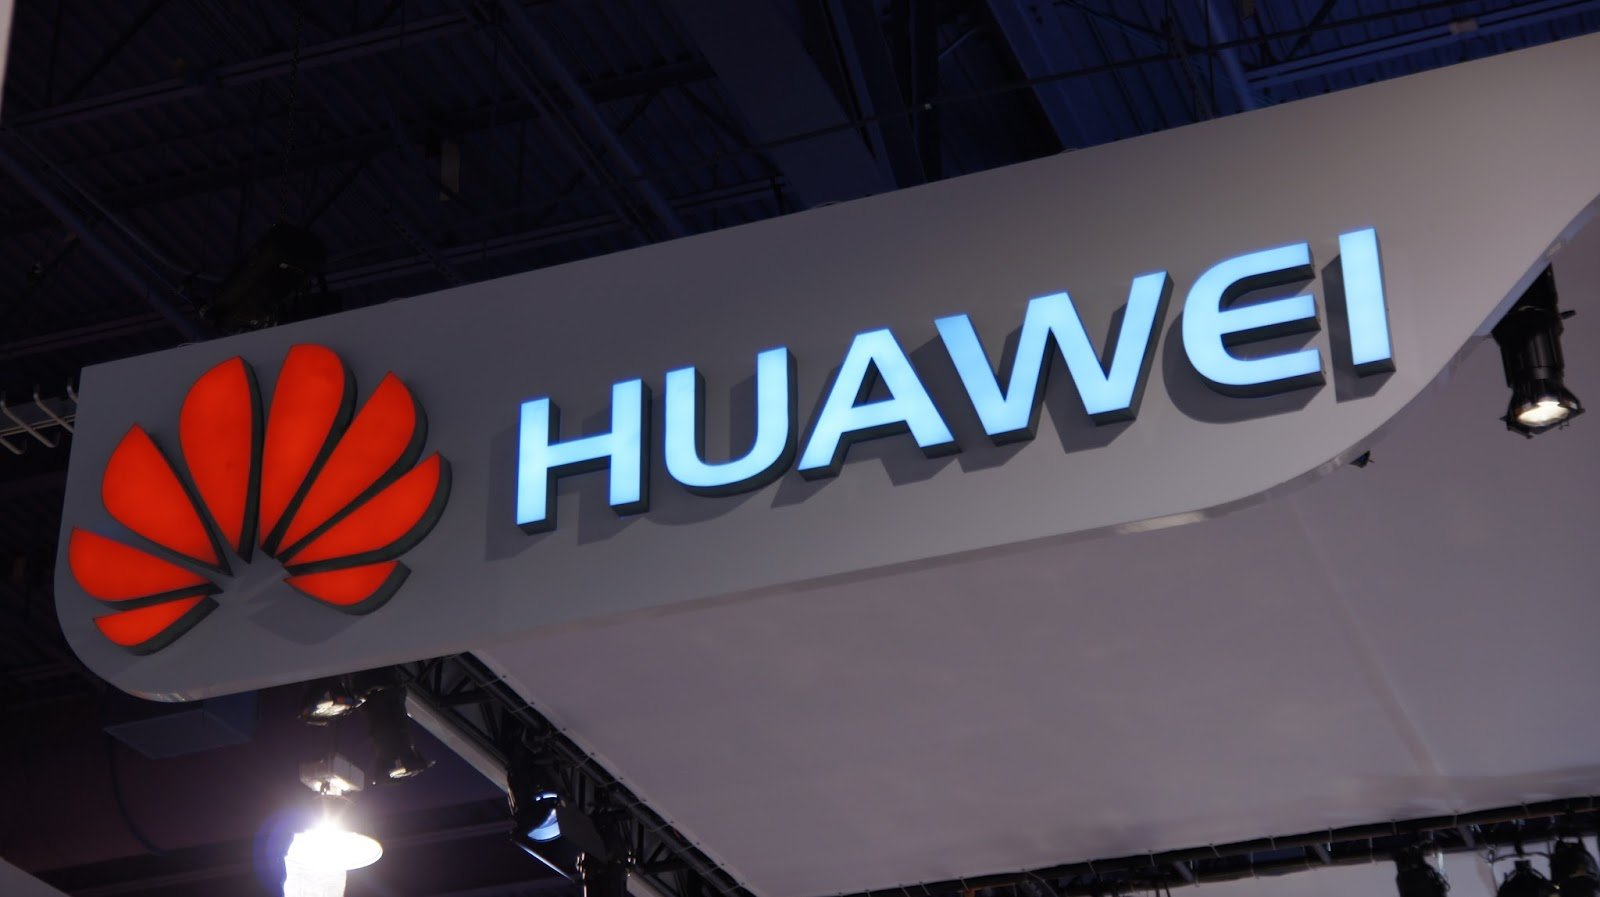 Huawei Rolls-out EMUI 9 Update For Huawei P20 Pro and Nova 3